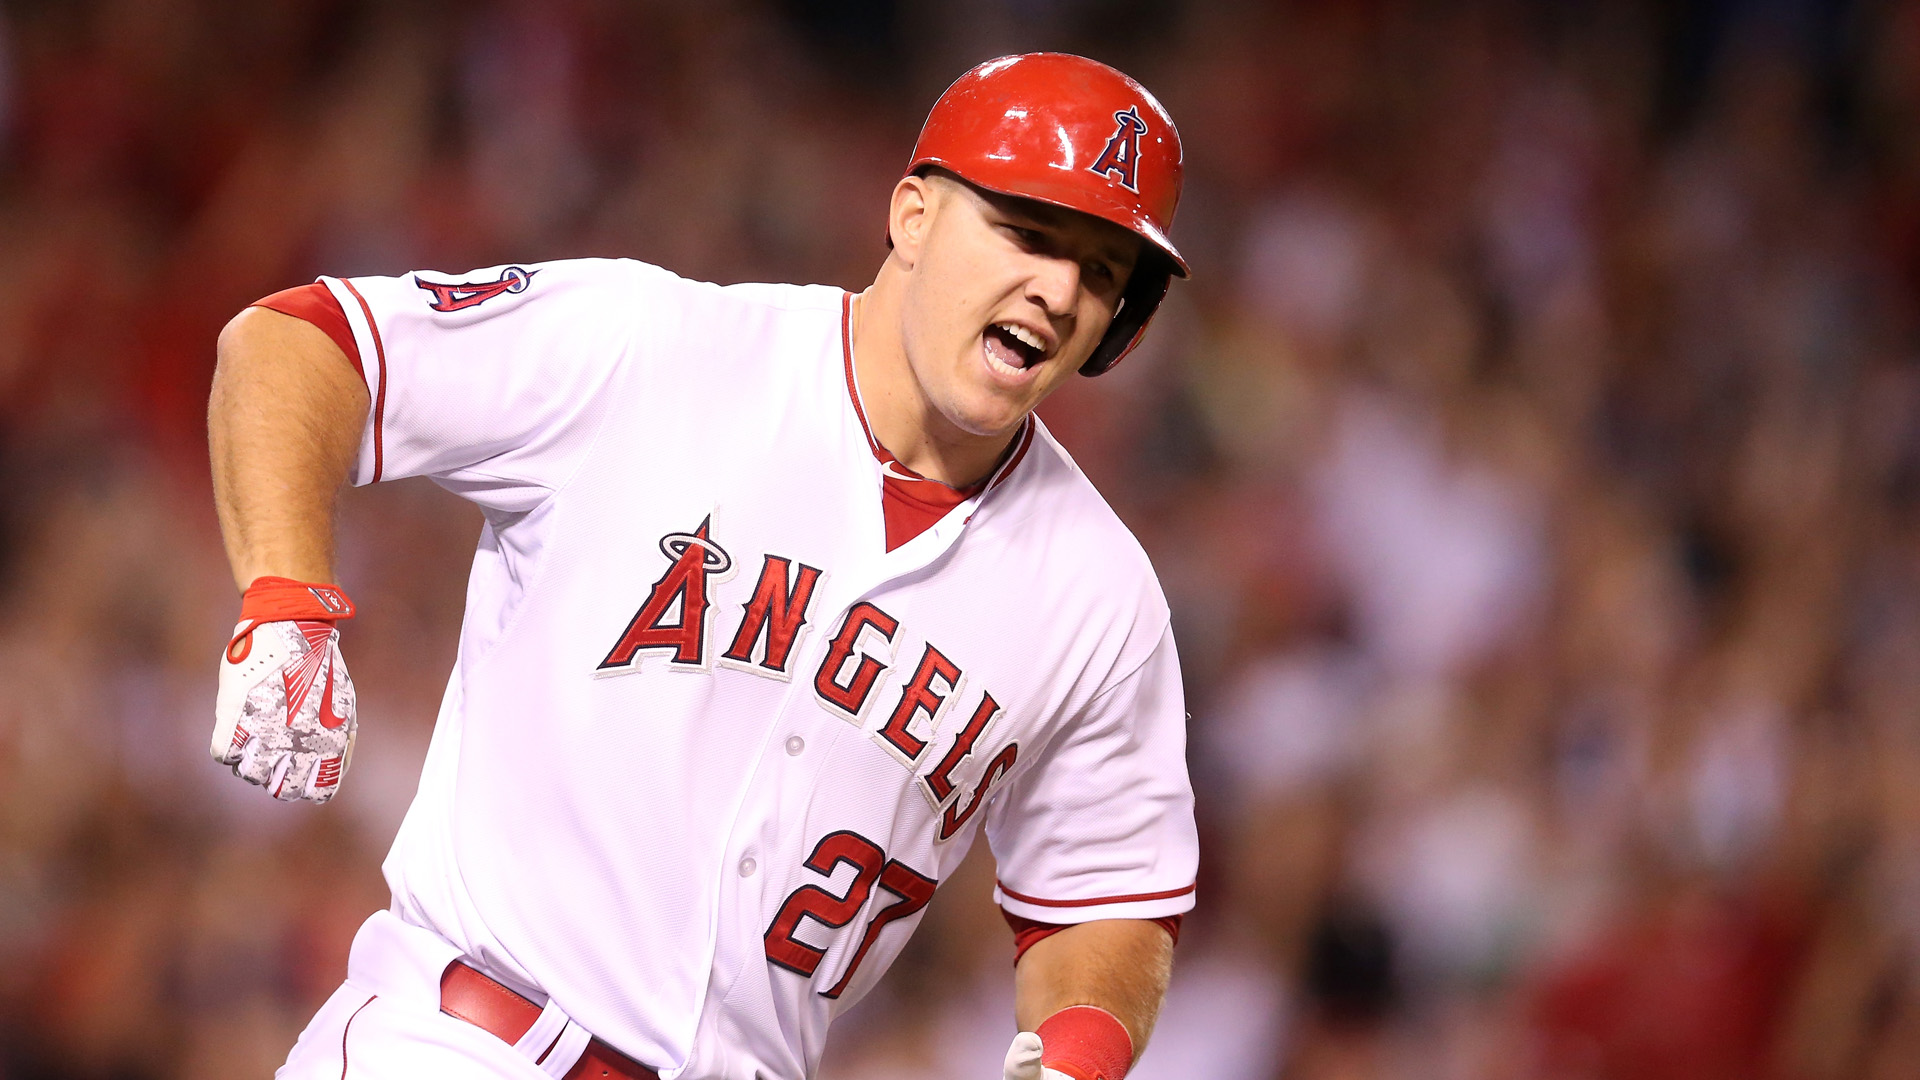 Mike Trout reacts as he runs to first as his walk off home run clears the wall in the ninth inning against the Boston Red Sox at Angel Stadium of Anaheim on July 17, 2015 in Anaheim, California. (Credit: Stephen Dunn/Getty Images)